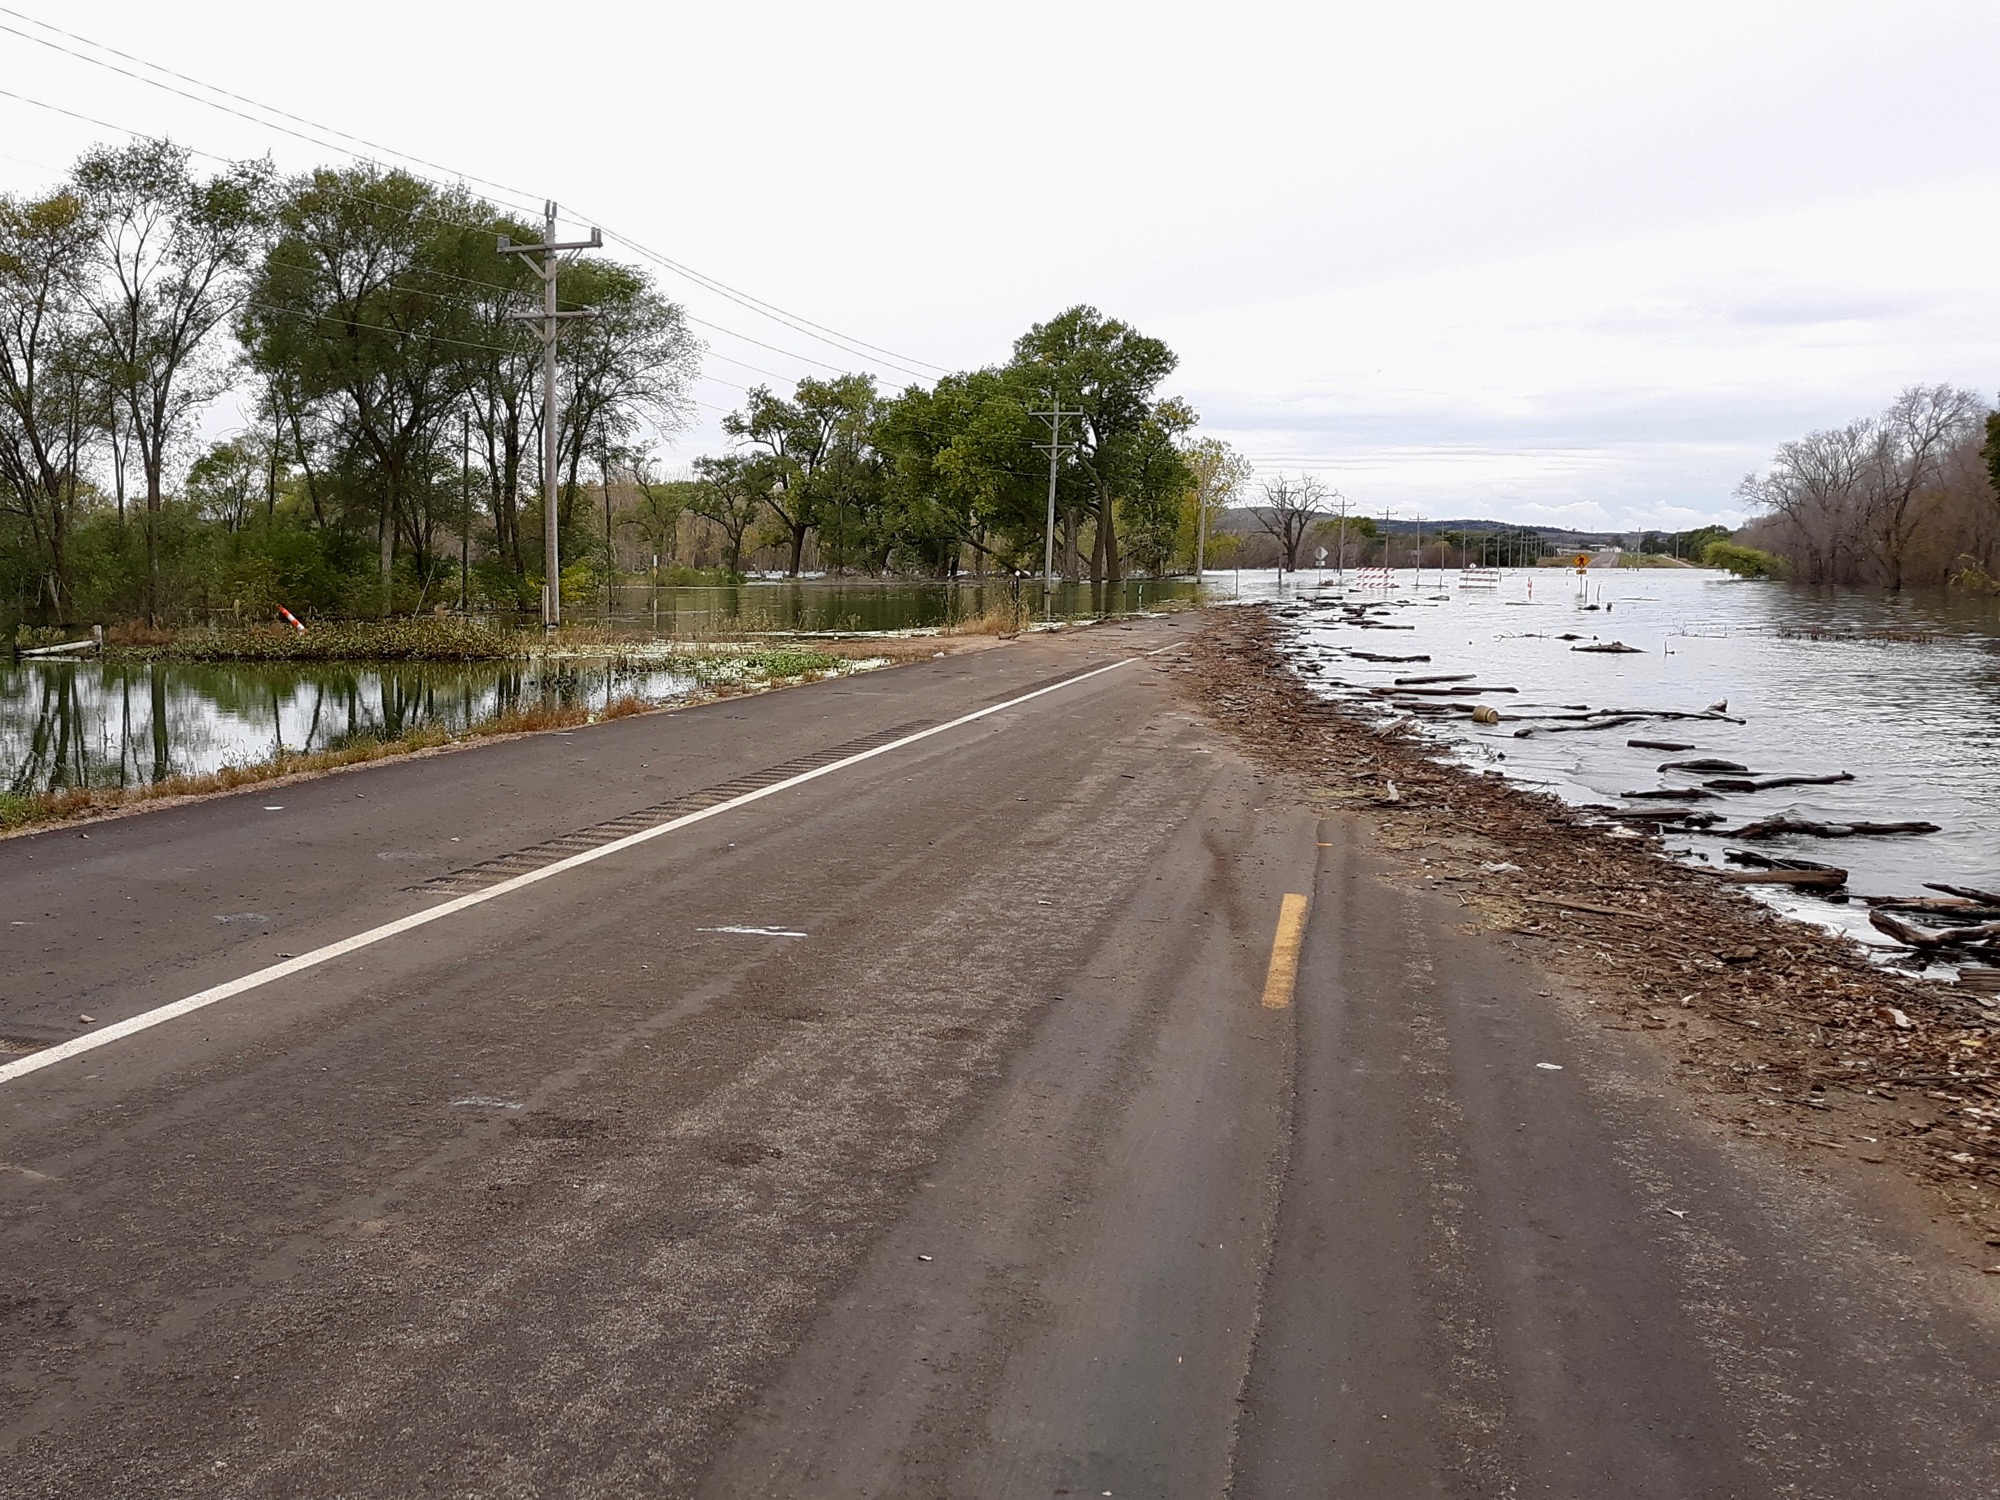 Yankton Sioux Tribe flooding and recovery